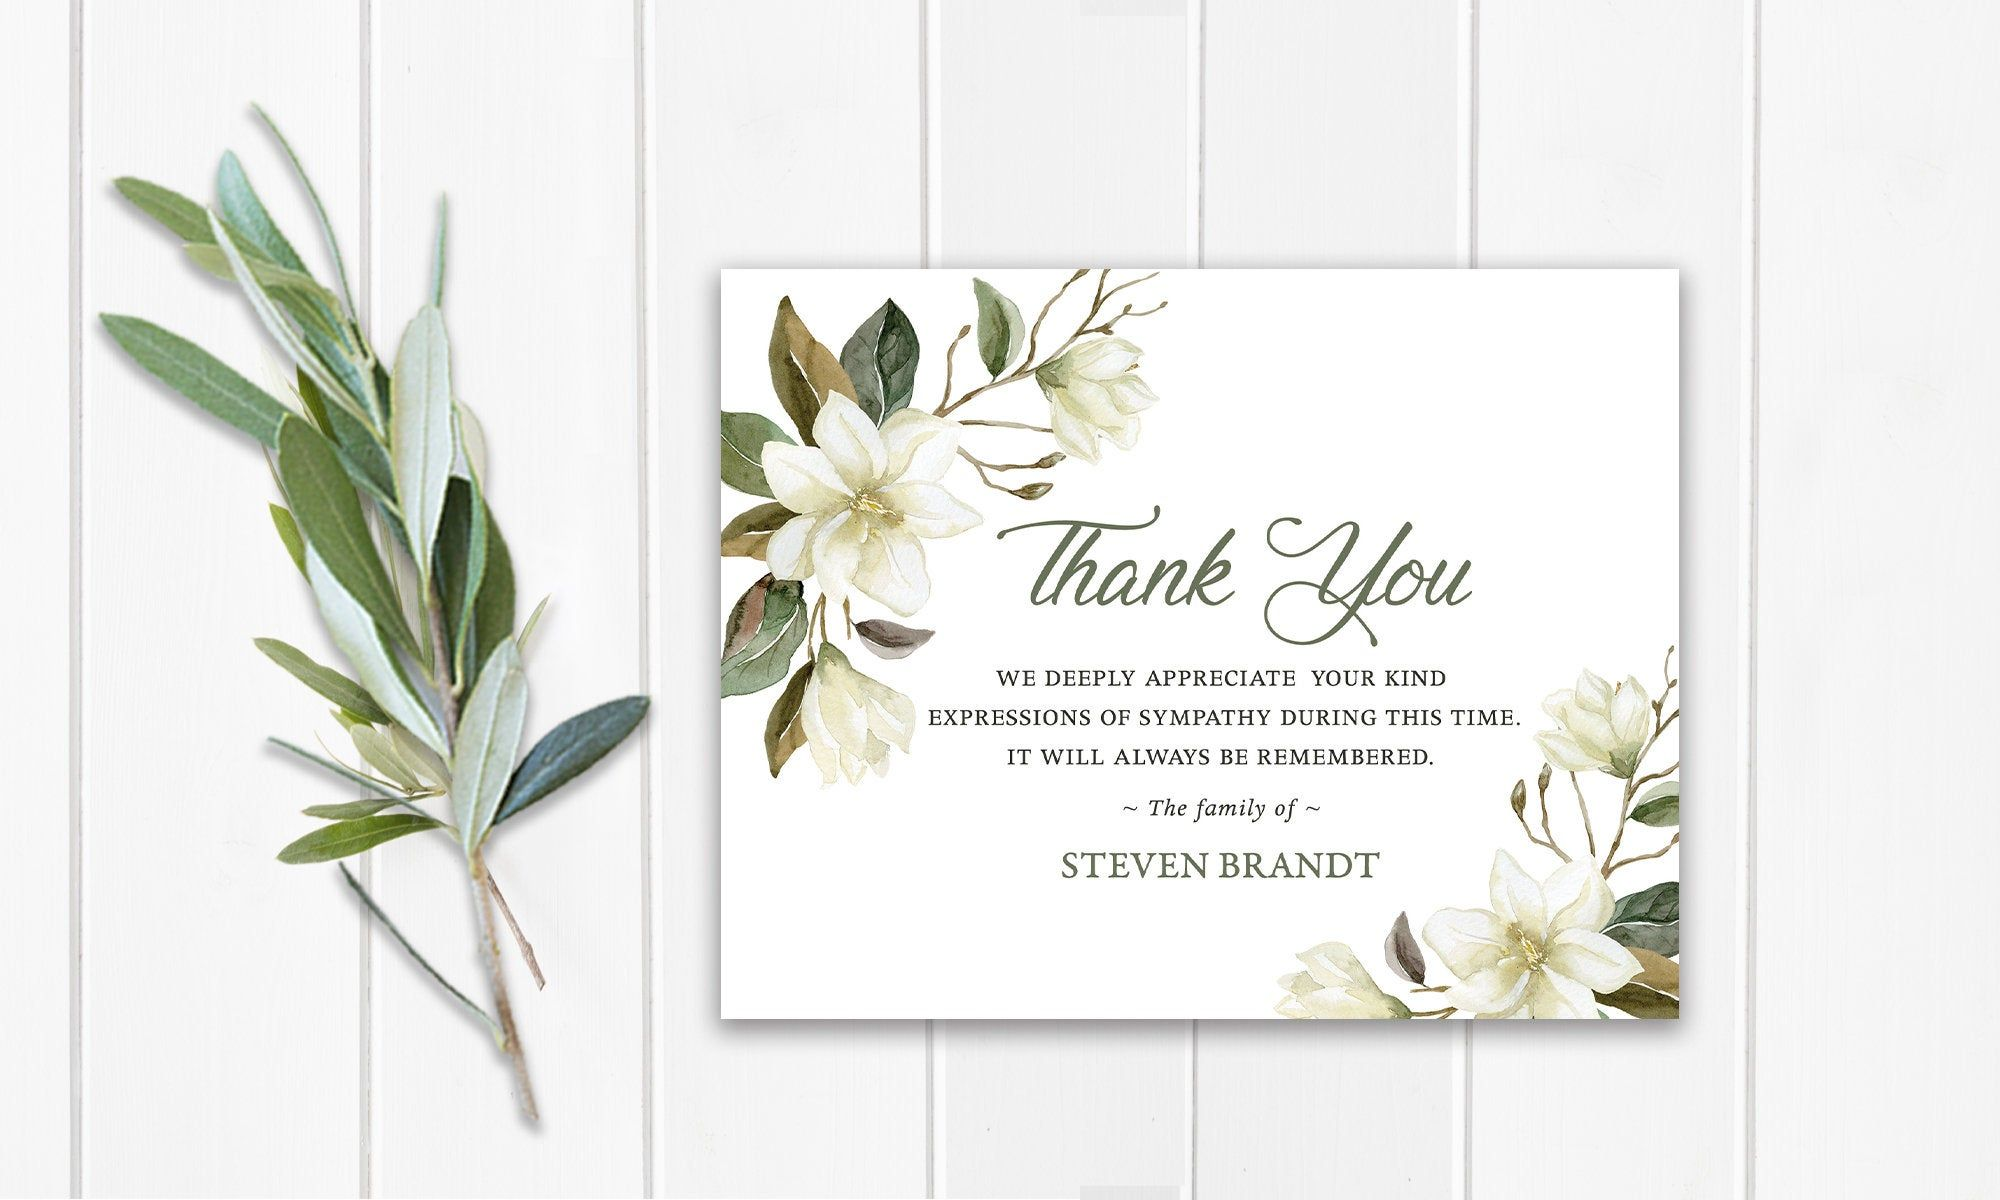 Funeral Thank You Cards Printable Funeral Thank You Notes Etsy Funeral Thank You Cards Funeral Thank You Notes Funeral Thank You